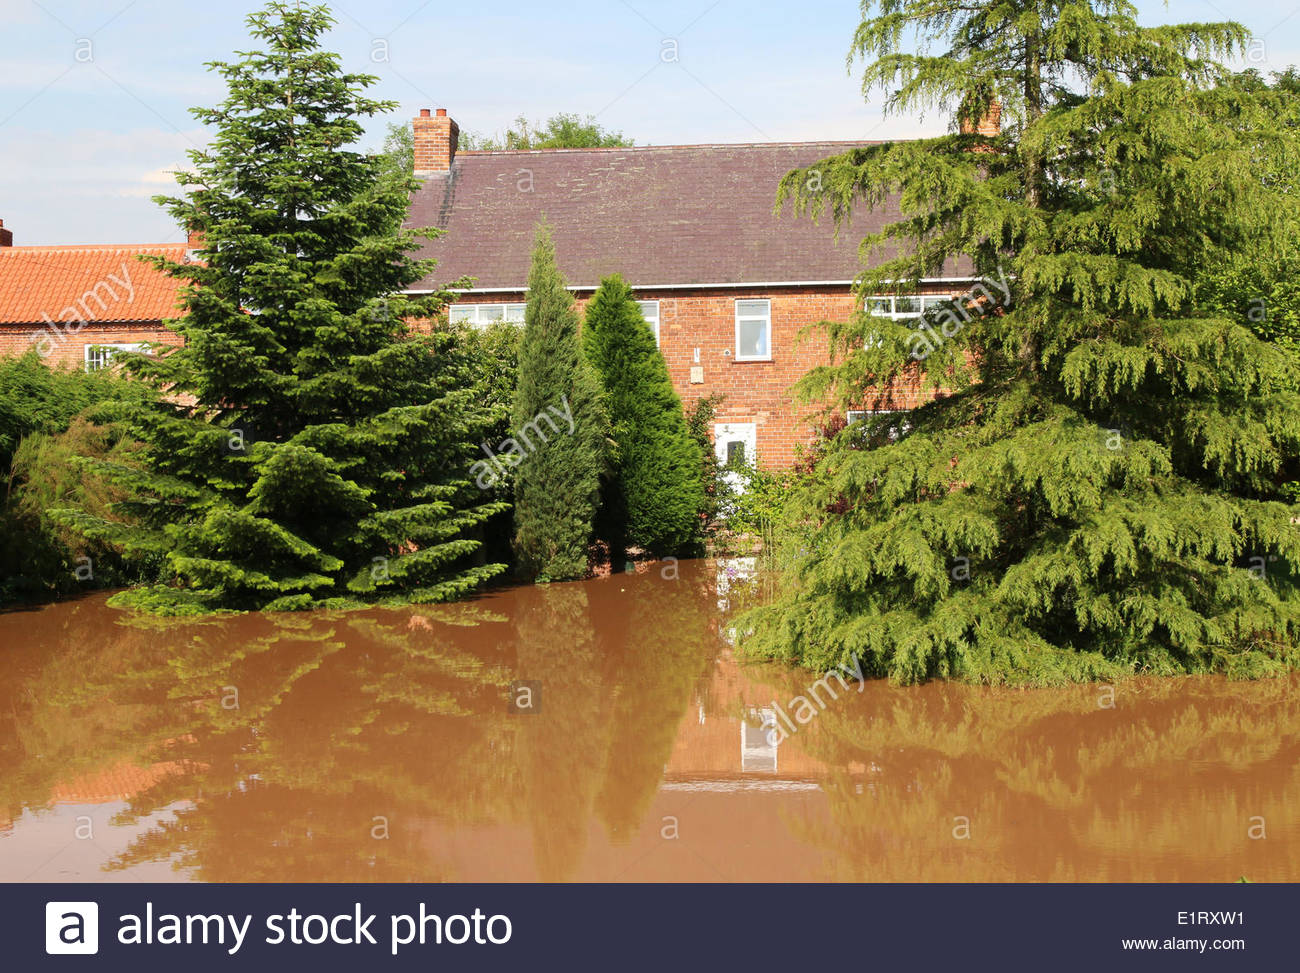 Clarborough, UK. 09th June, 2014. The effects of flash flooding after a viscious storm  in Clarborough, Near Retford, Stock Photo